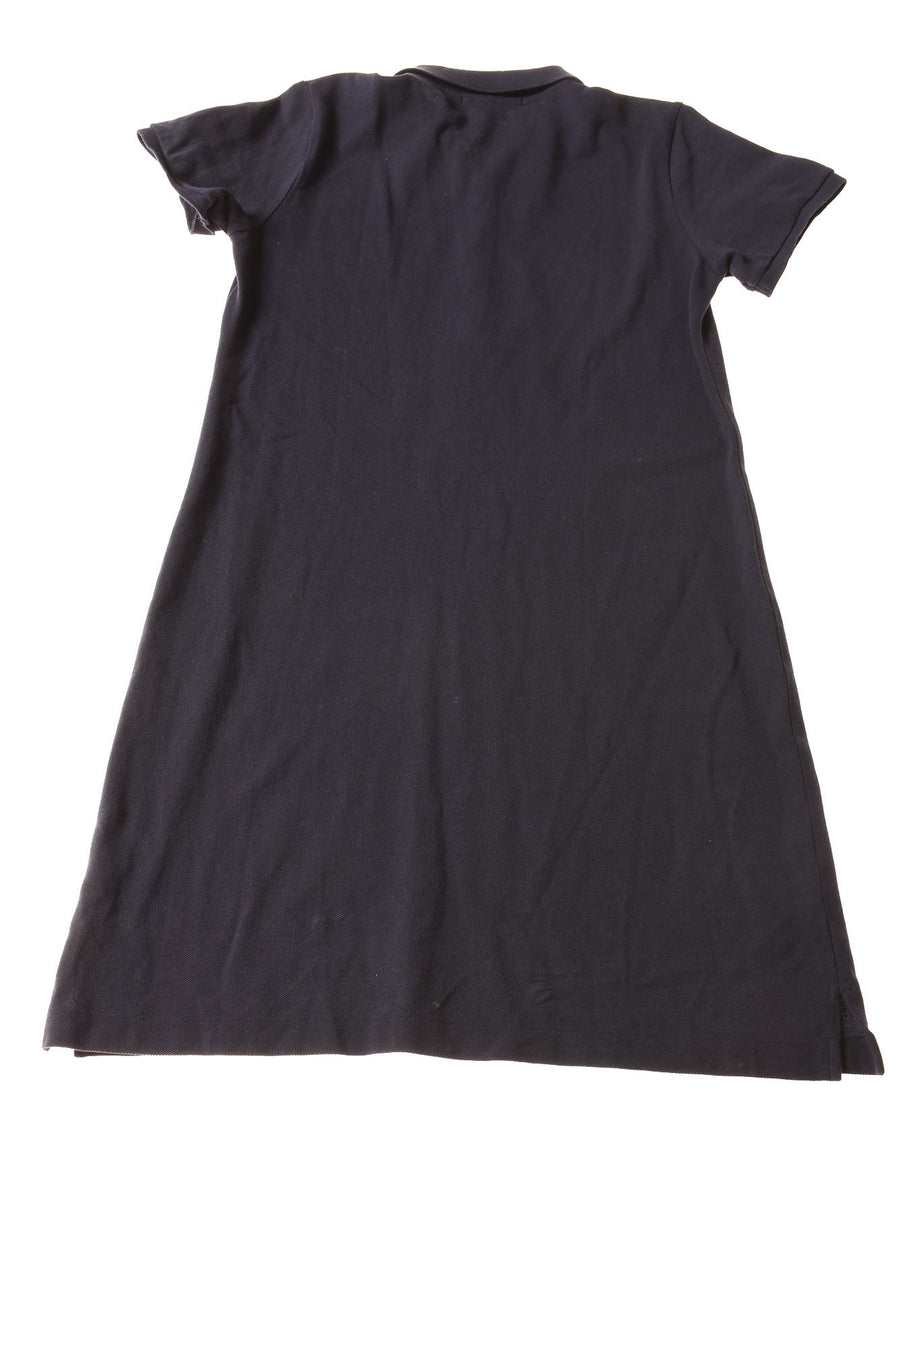 NEW Ralph Lauren Women's Dress X-Large Navy